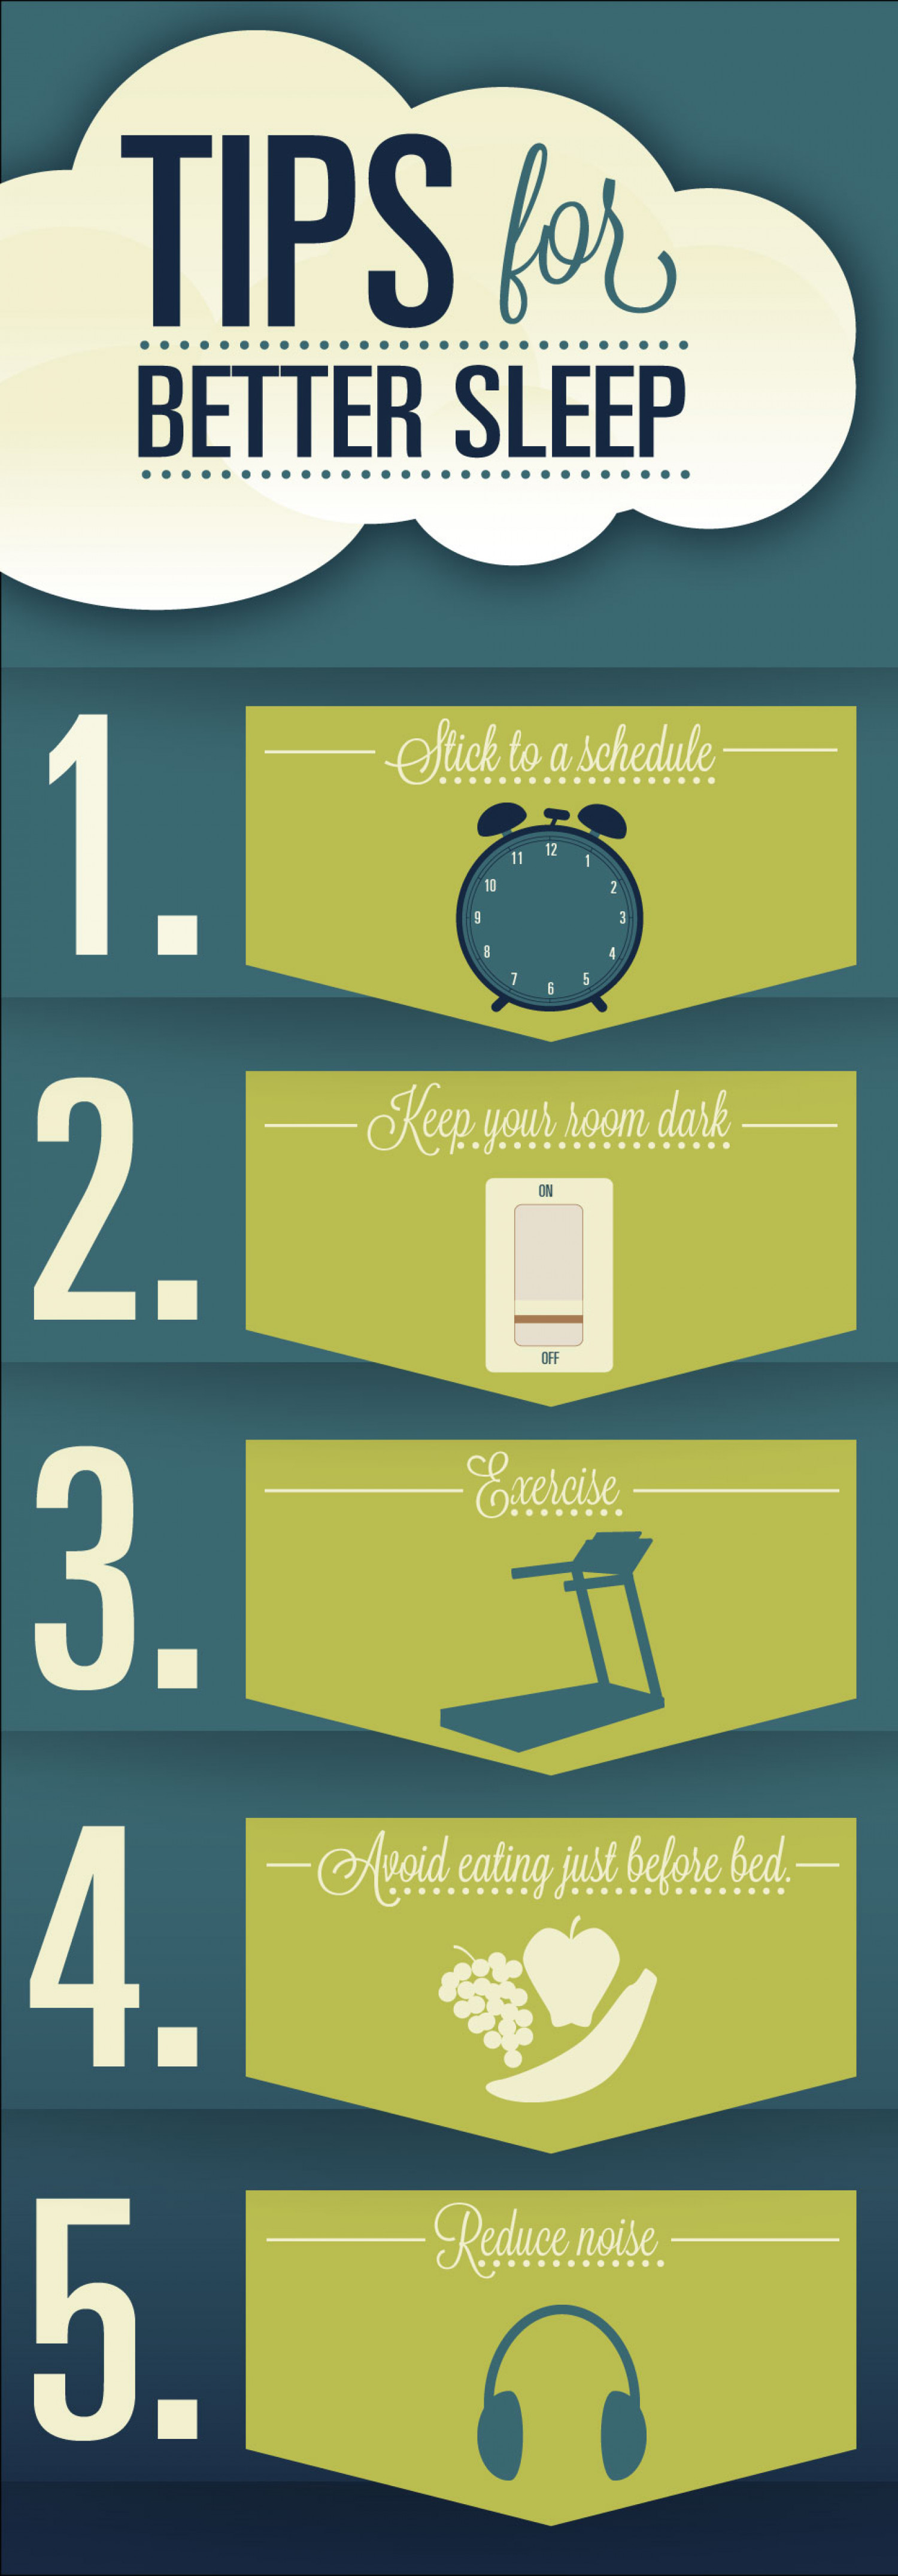 5 Tips for peaceful sleep  Infographic